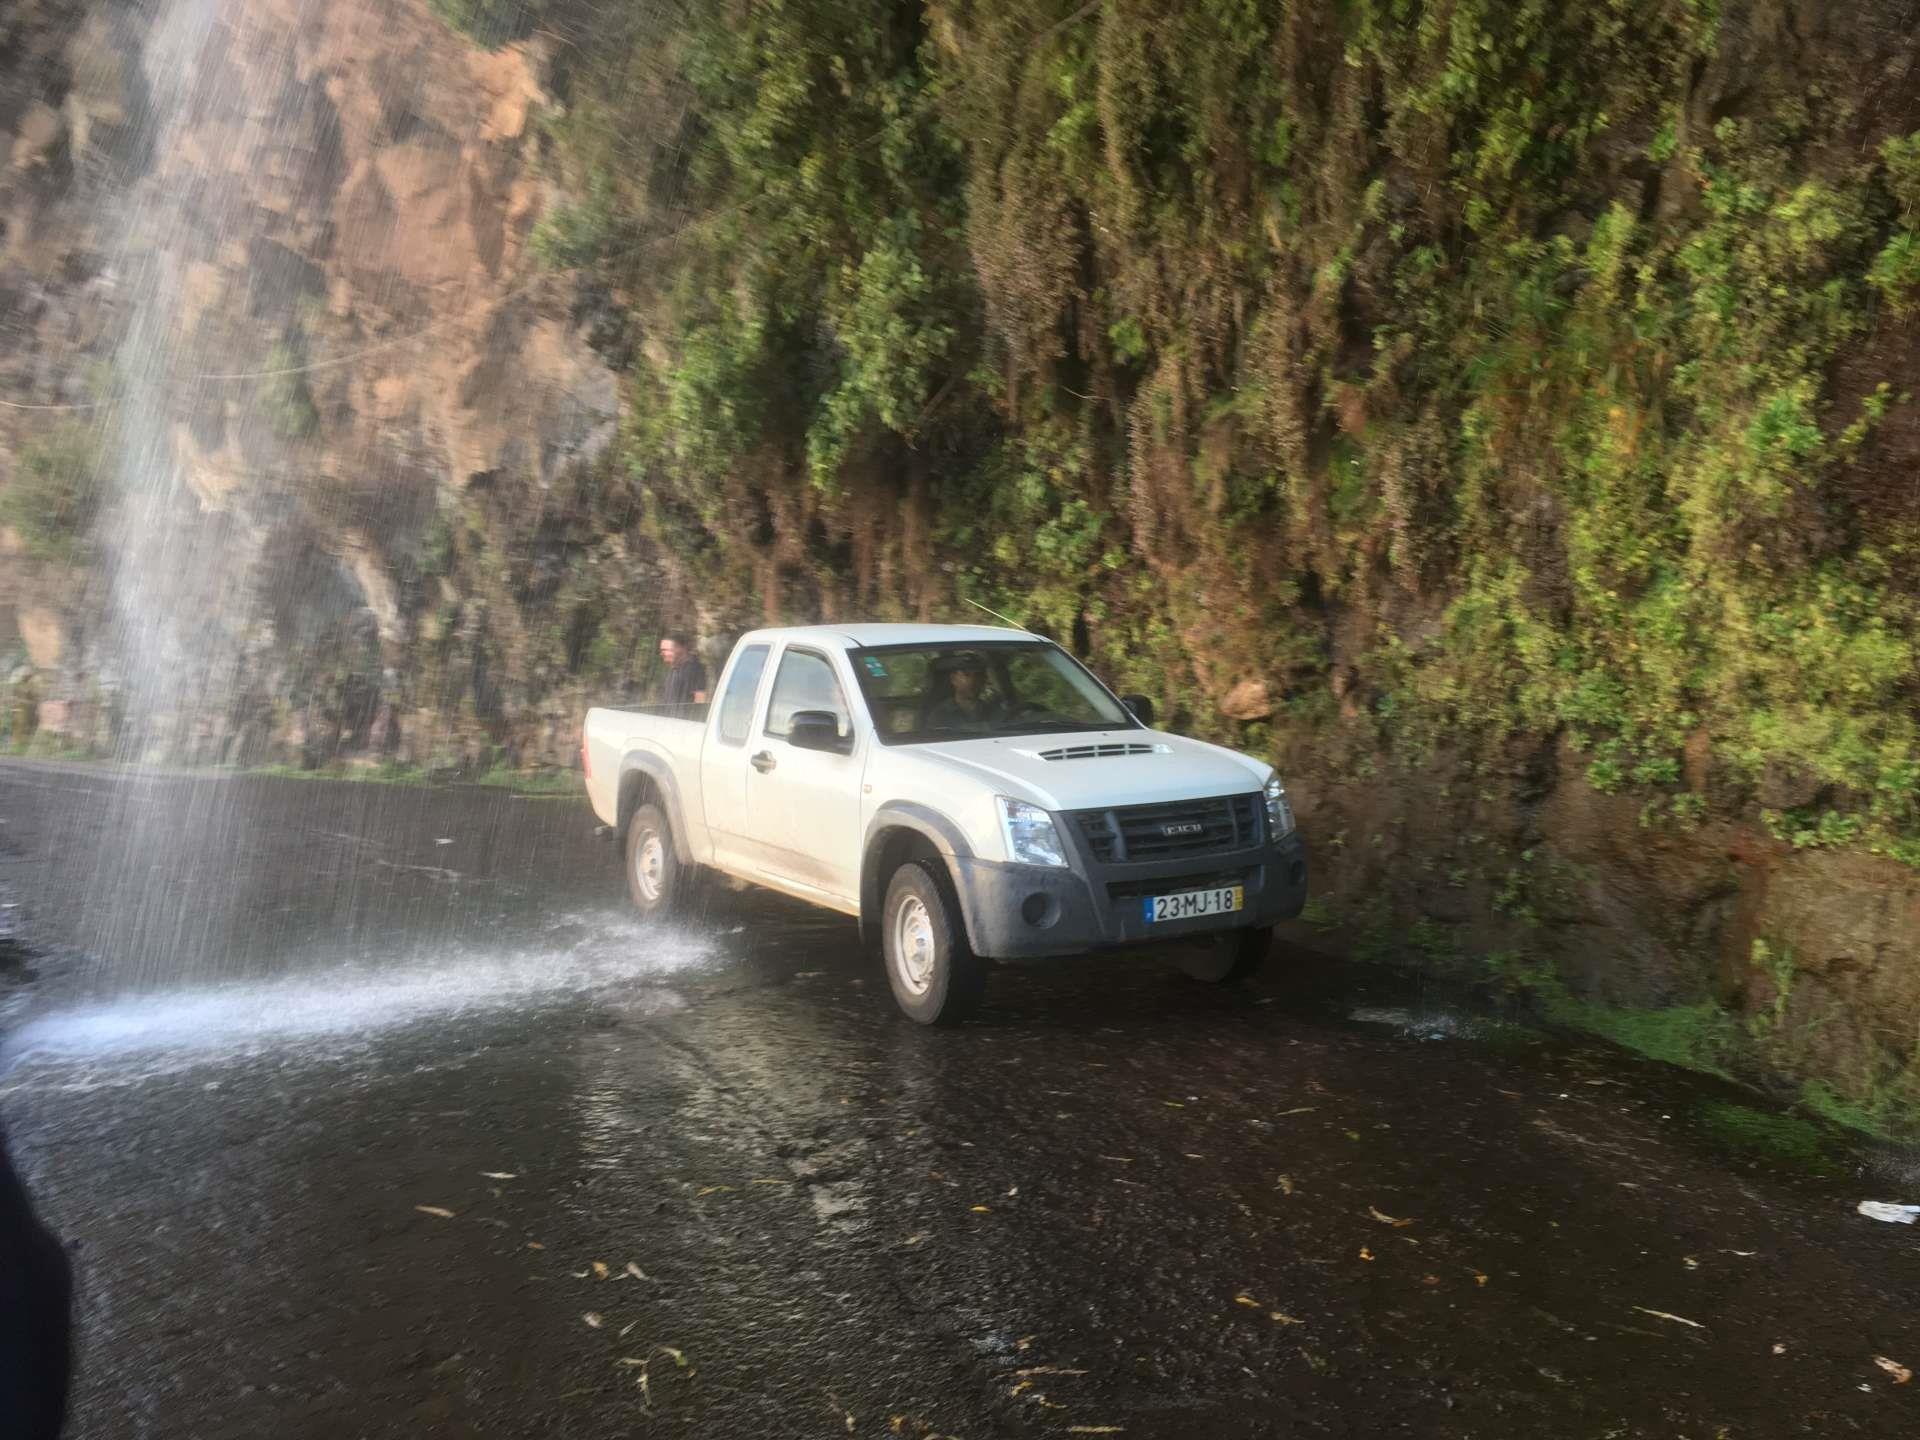 Portugal_Madera_waterval_auto